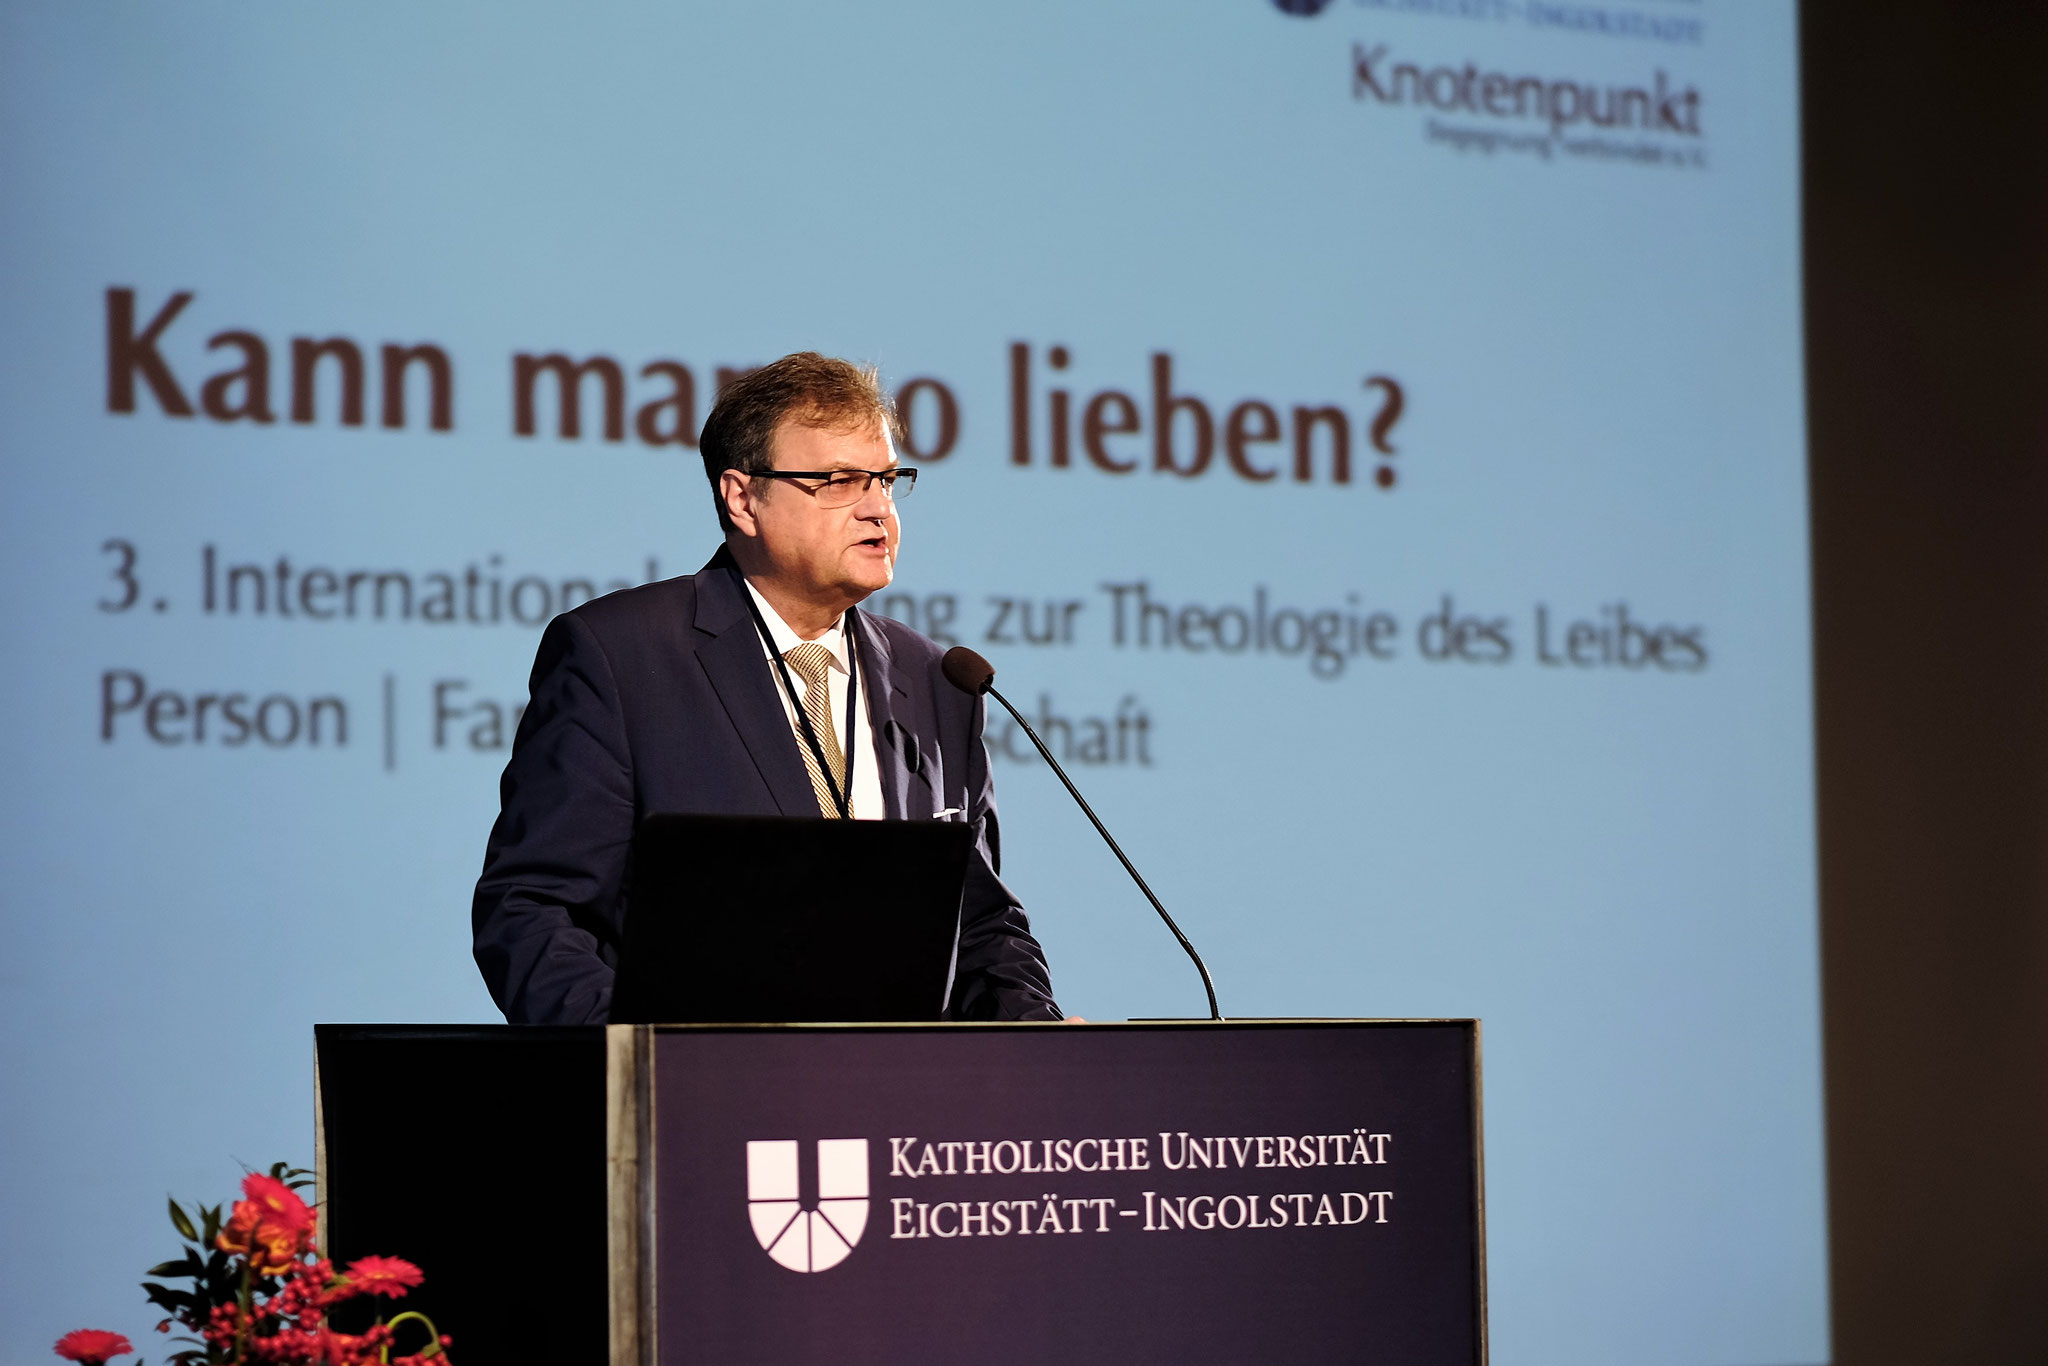 Prof. Dr. Manfred Gerwing